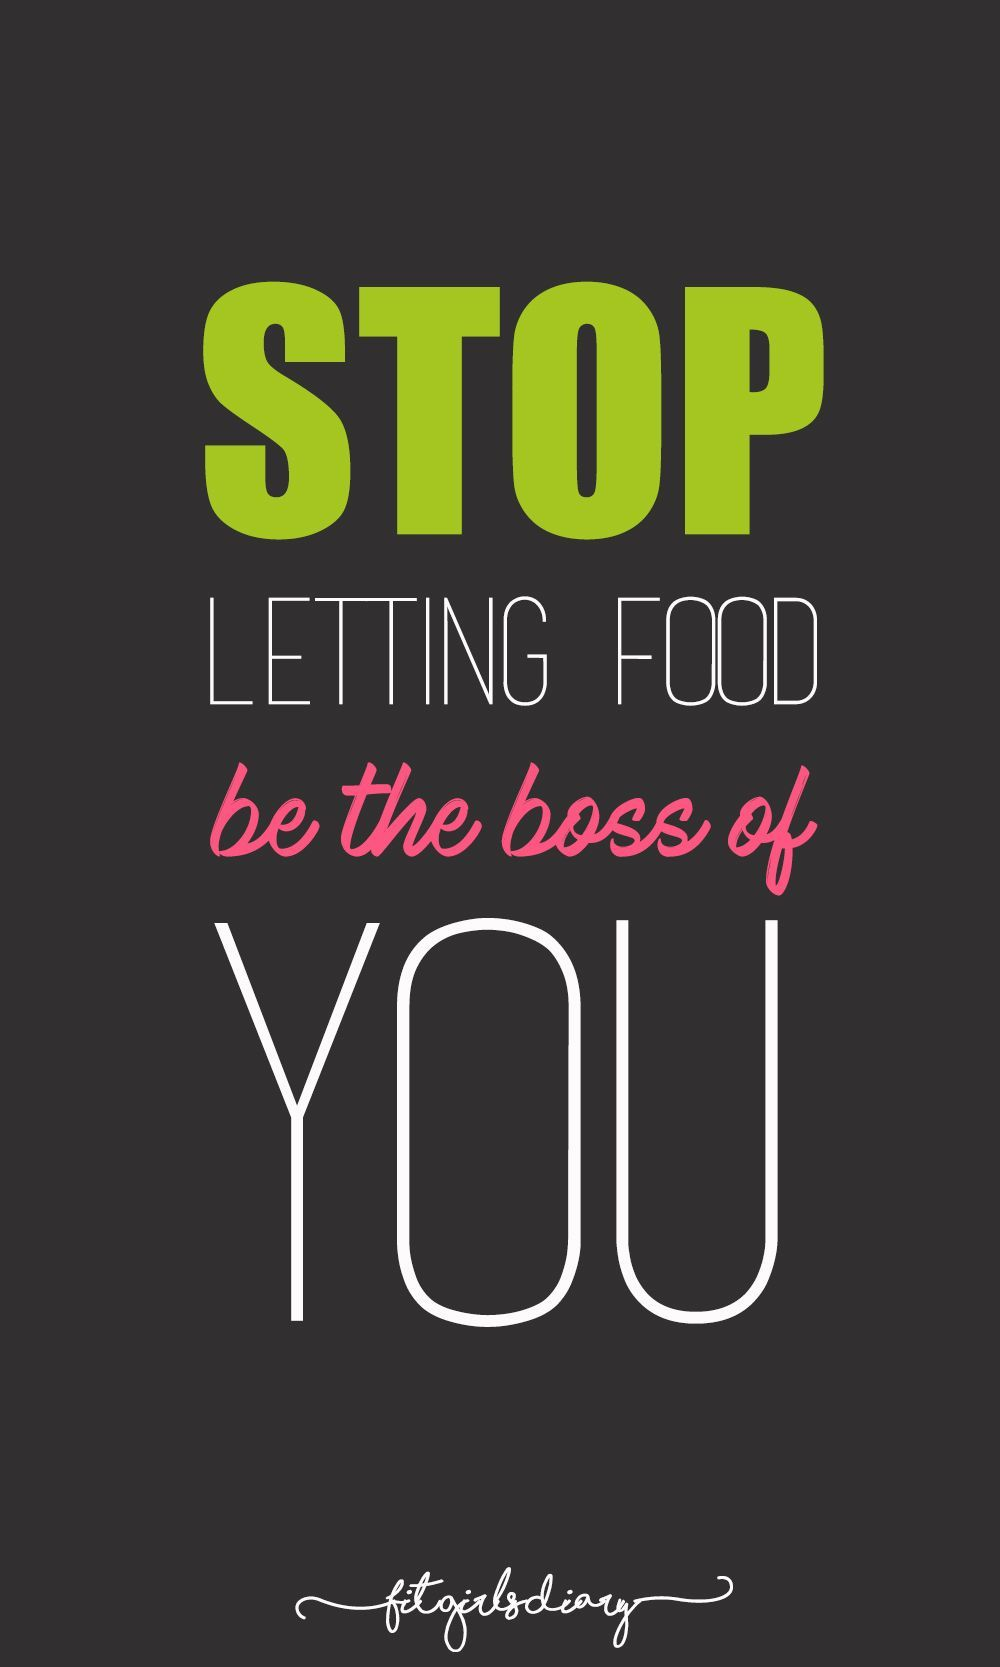 You can enjoy life and loosten up while still eating healthy ...